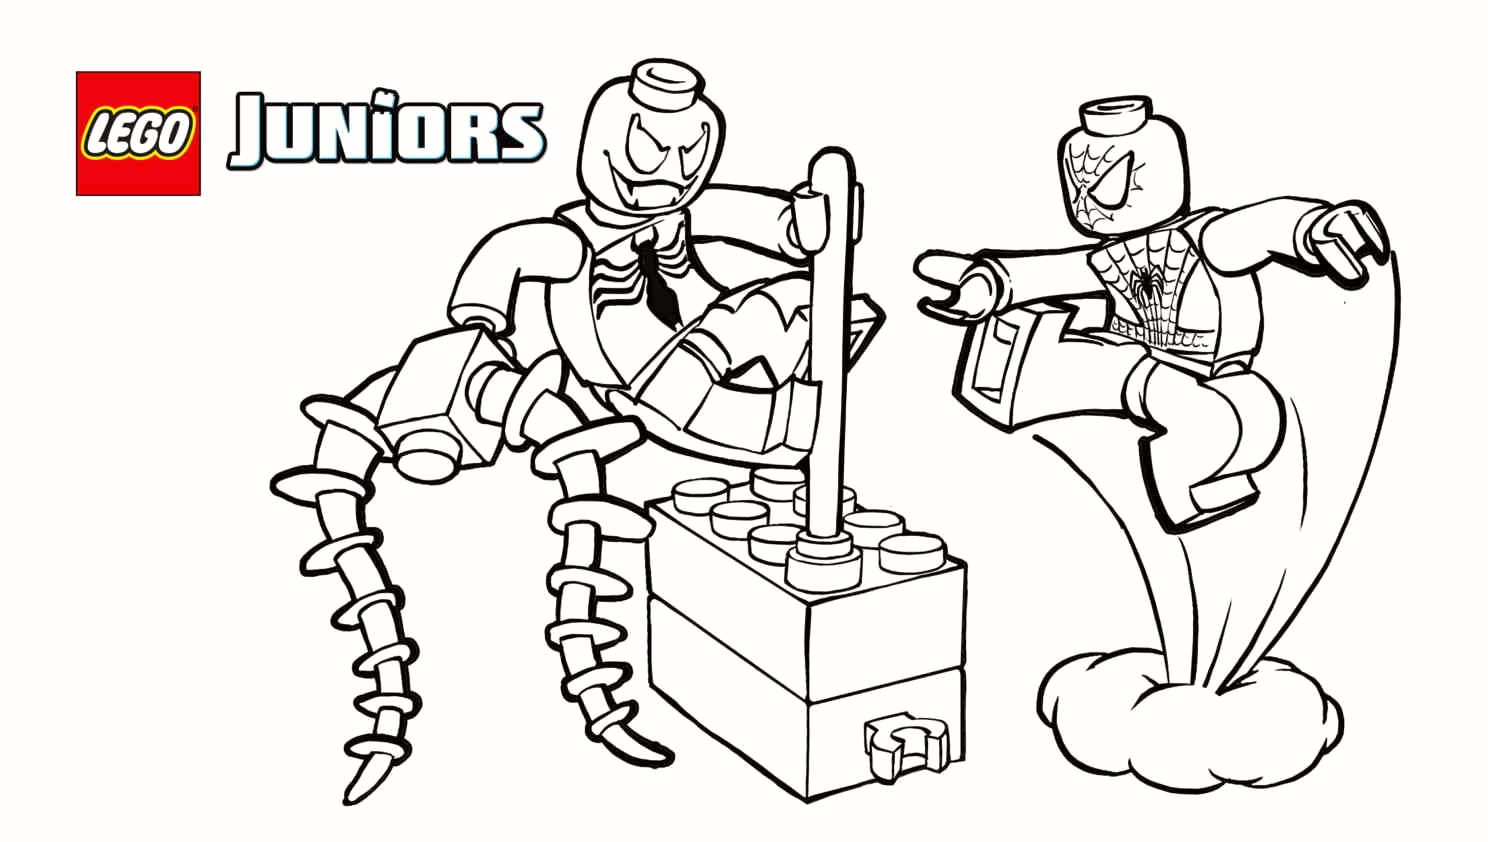 Lego Spiderman Coloring Pages Lego Spiderman Coloring Pages Unique Photos Lego Spiderman Coloring